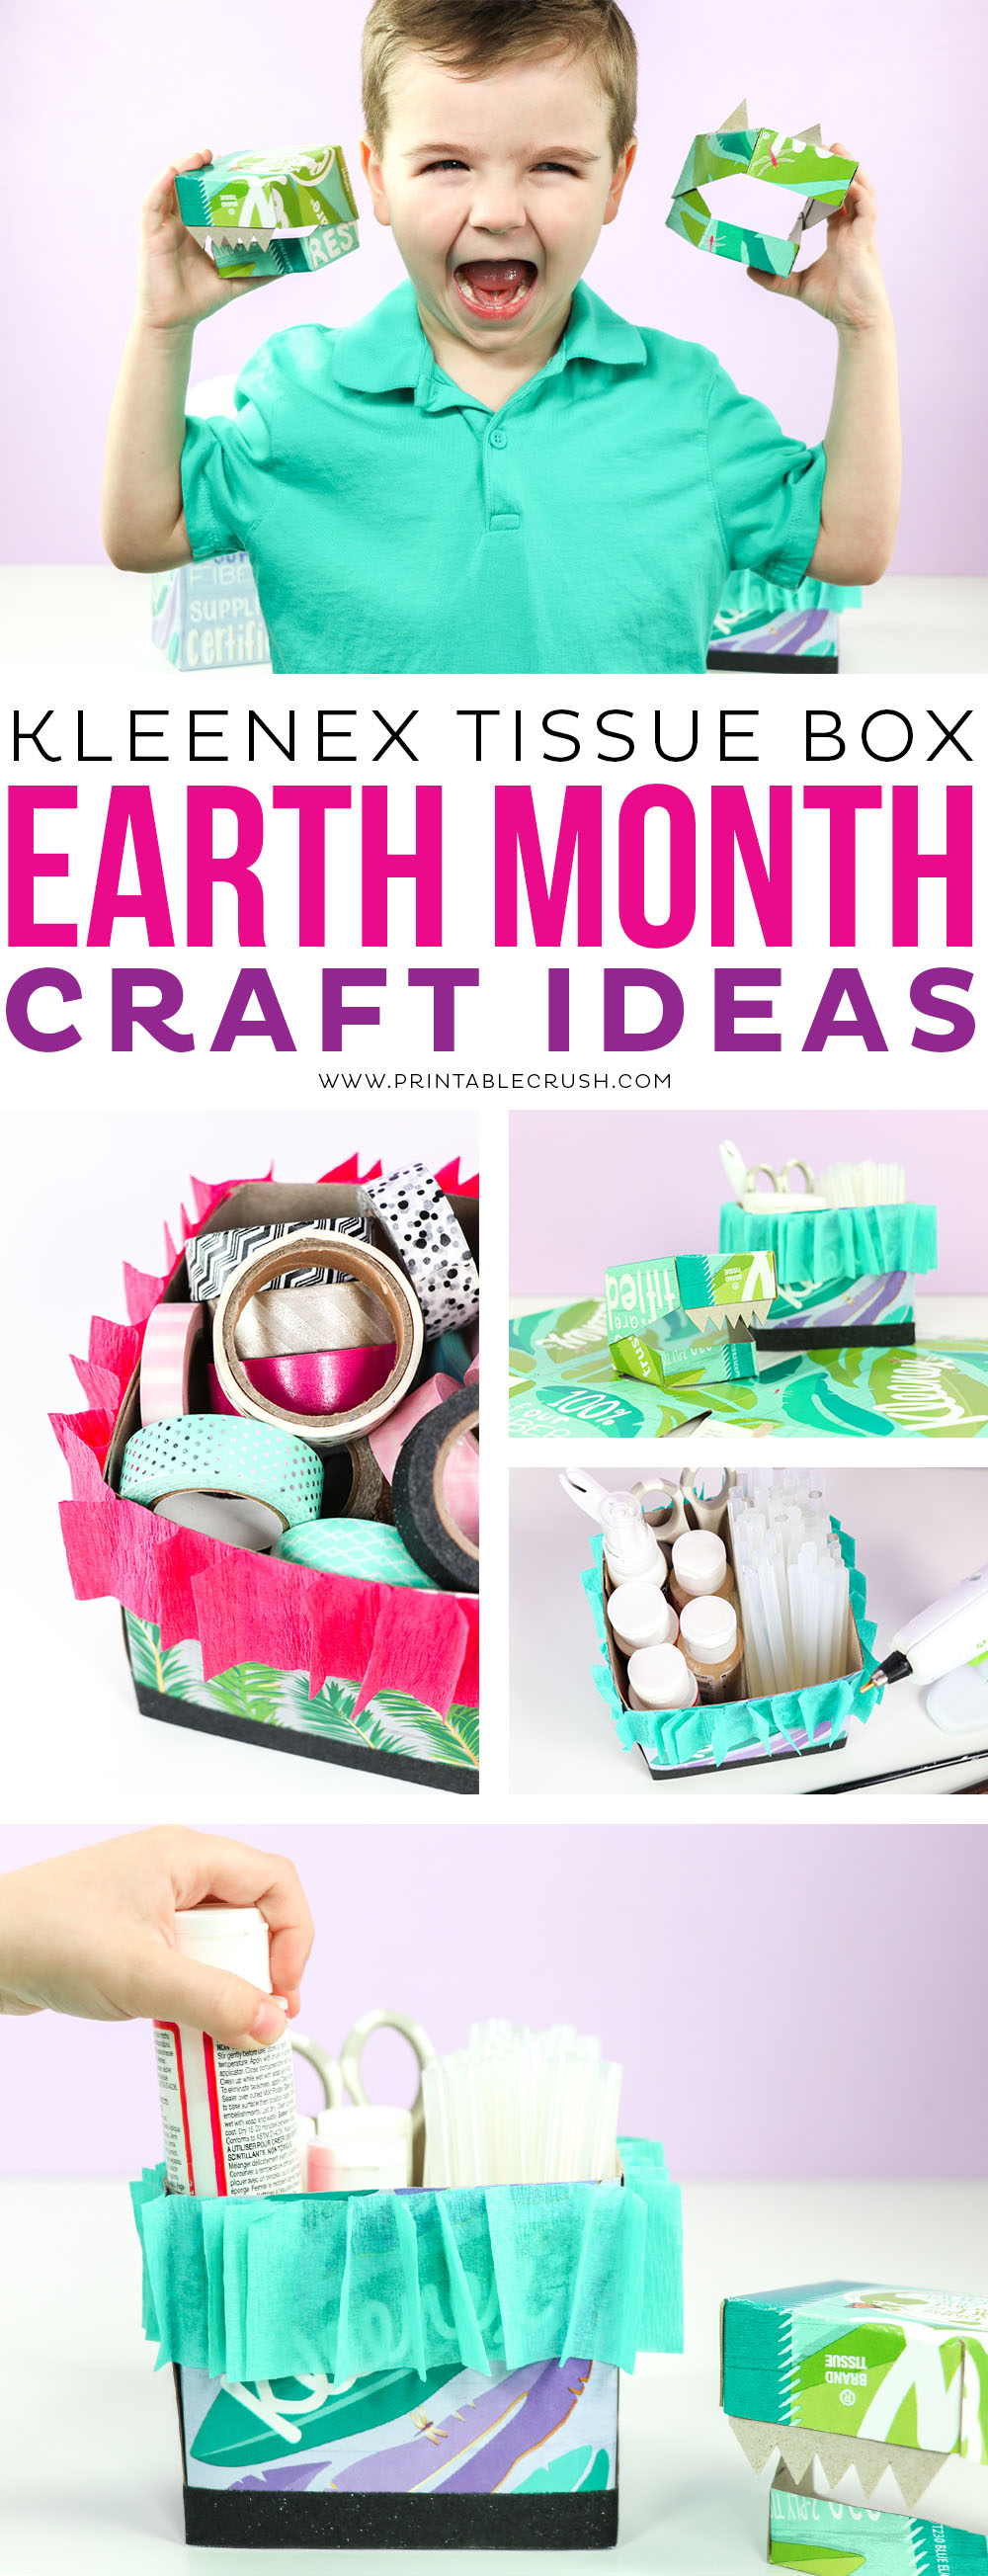 Create these Kleenex® Tissue Box Dinosaur Masks and Craft Supply boxes for fun Earth Month Crafts!